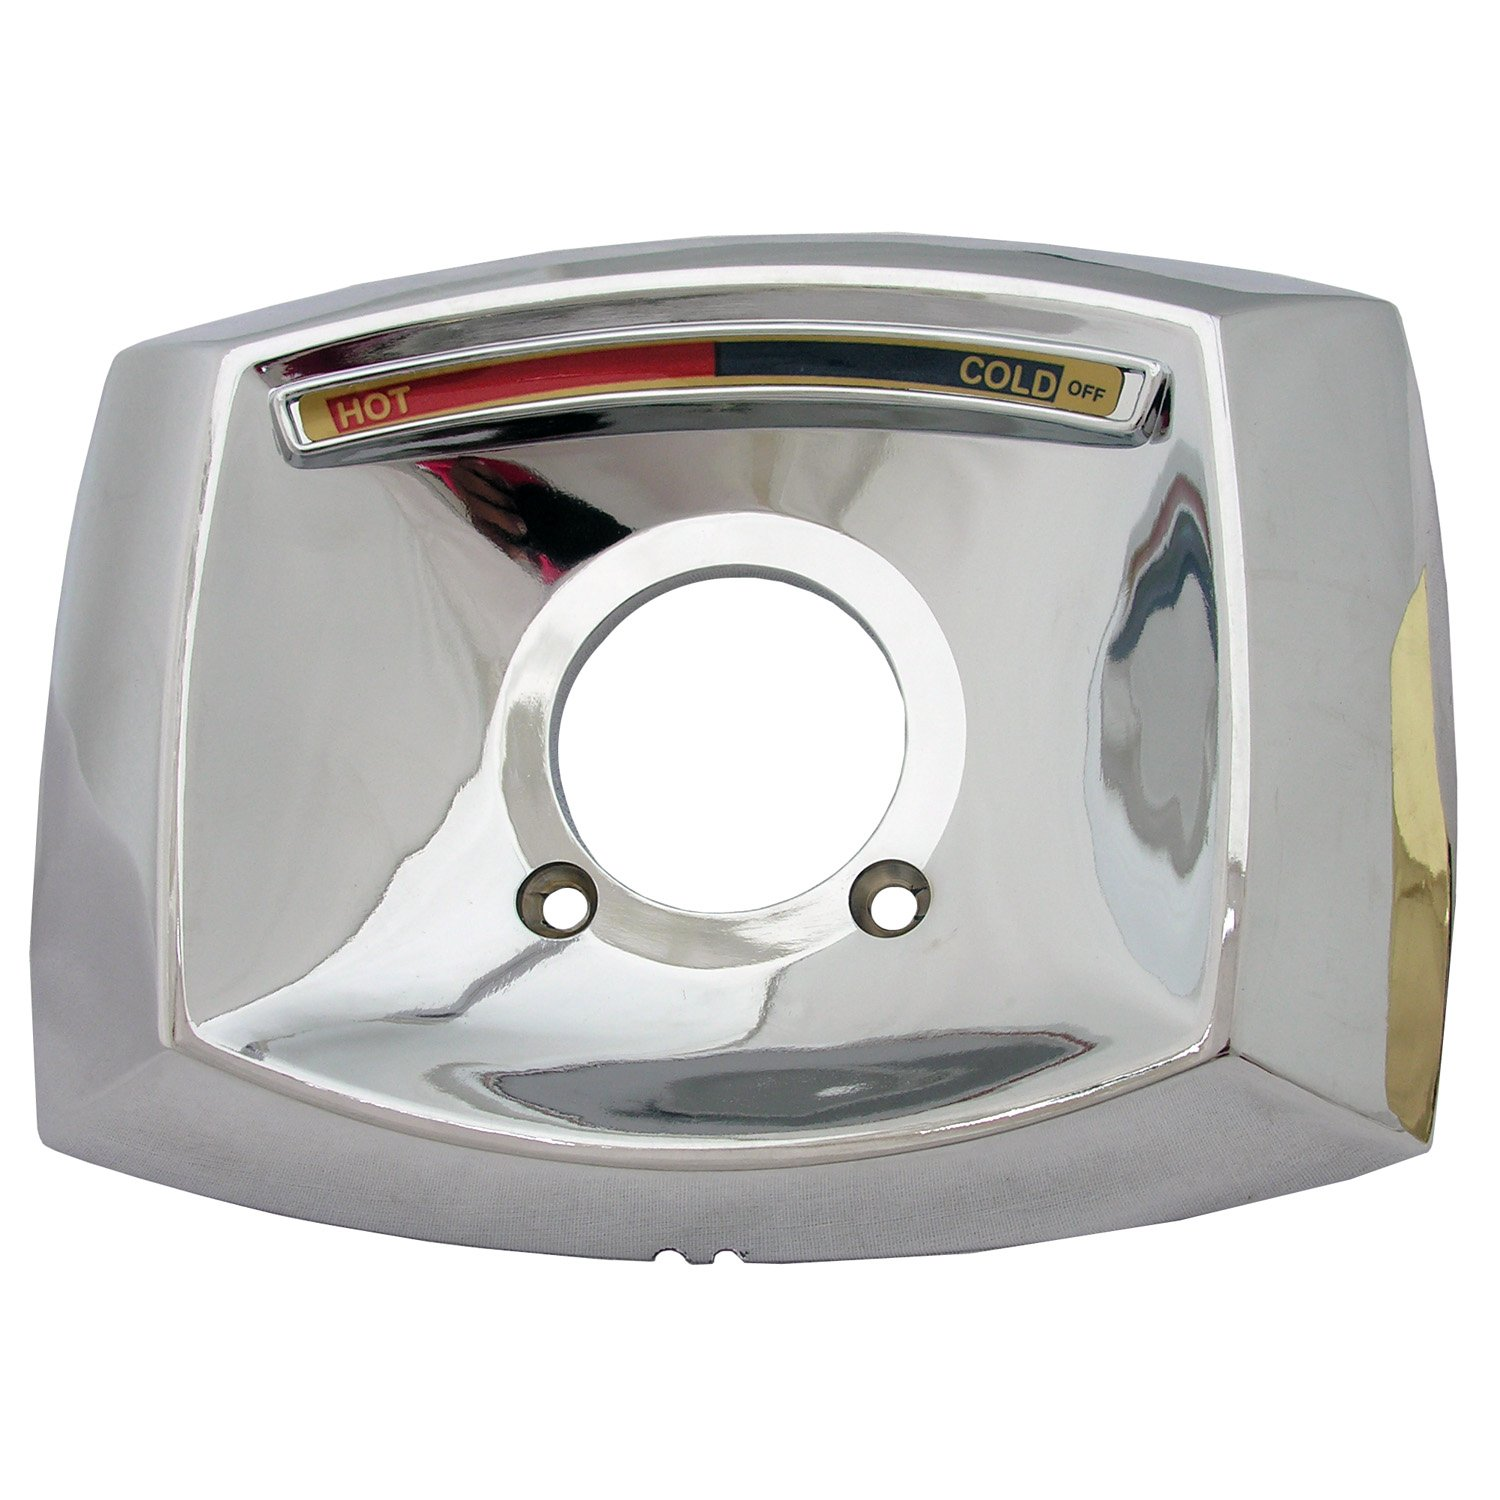 Simpatico 31644C Delta Rectangle Shaped Shower Escutcheon Only For Shower  Valve, Chrome Plated     Amazon.com